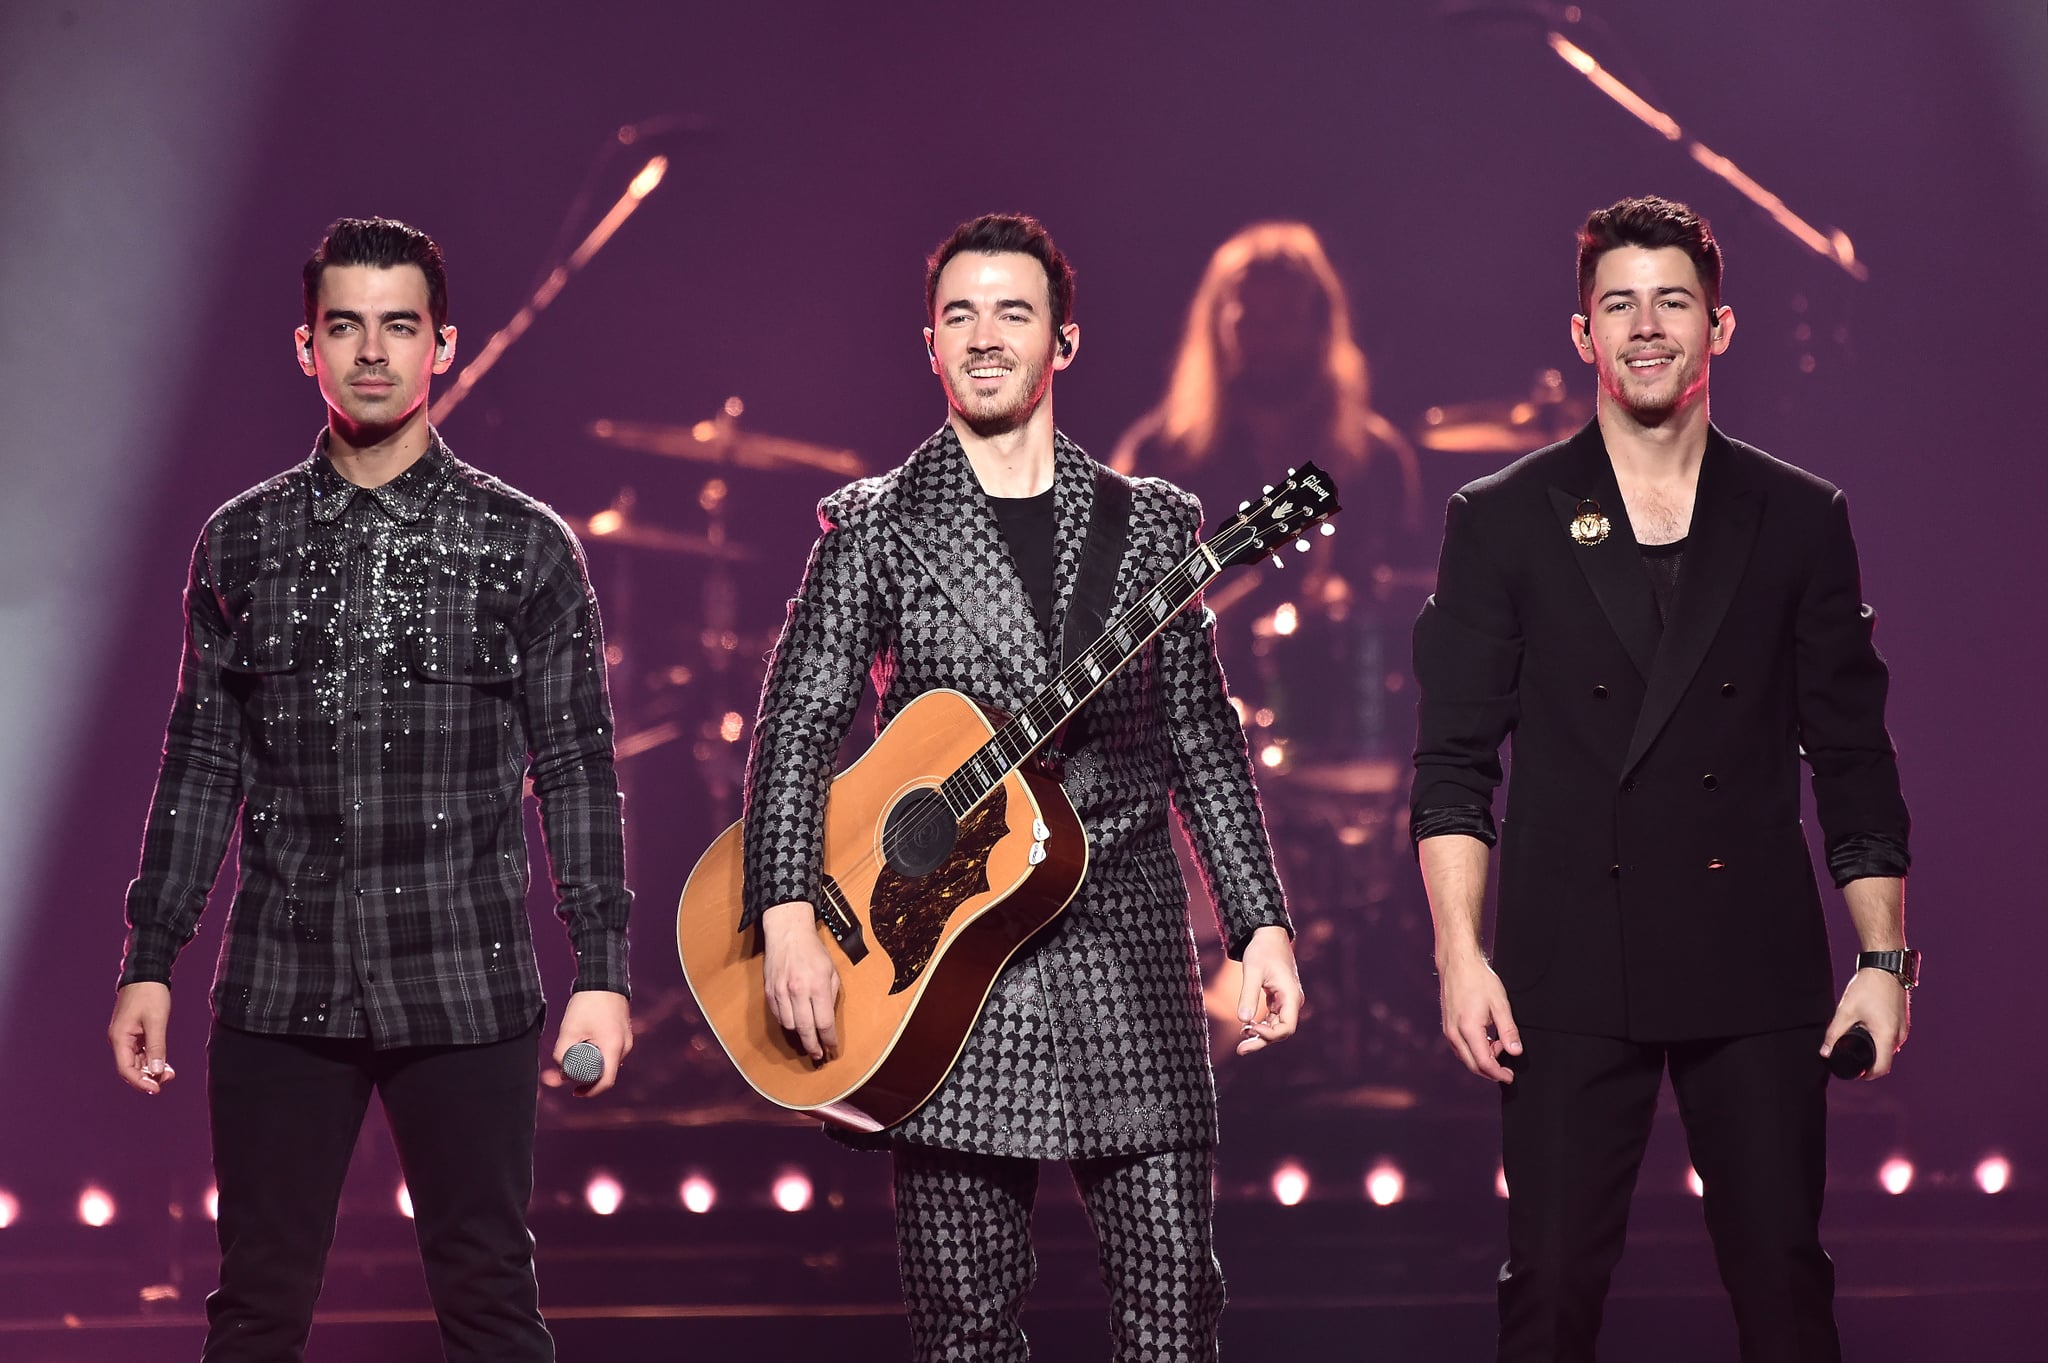 NEW YORK, NEW YORK - NOVEMBER 23: Joe Jonas, Kevin Jonas, and Nick Jonas of The Jonas Brothers perform at Barclays Centre on November 23, 2019 in New York City. (Photo by Steven Ferdman/Getty Images)